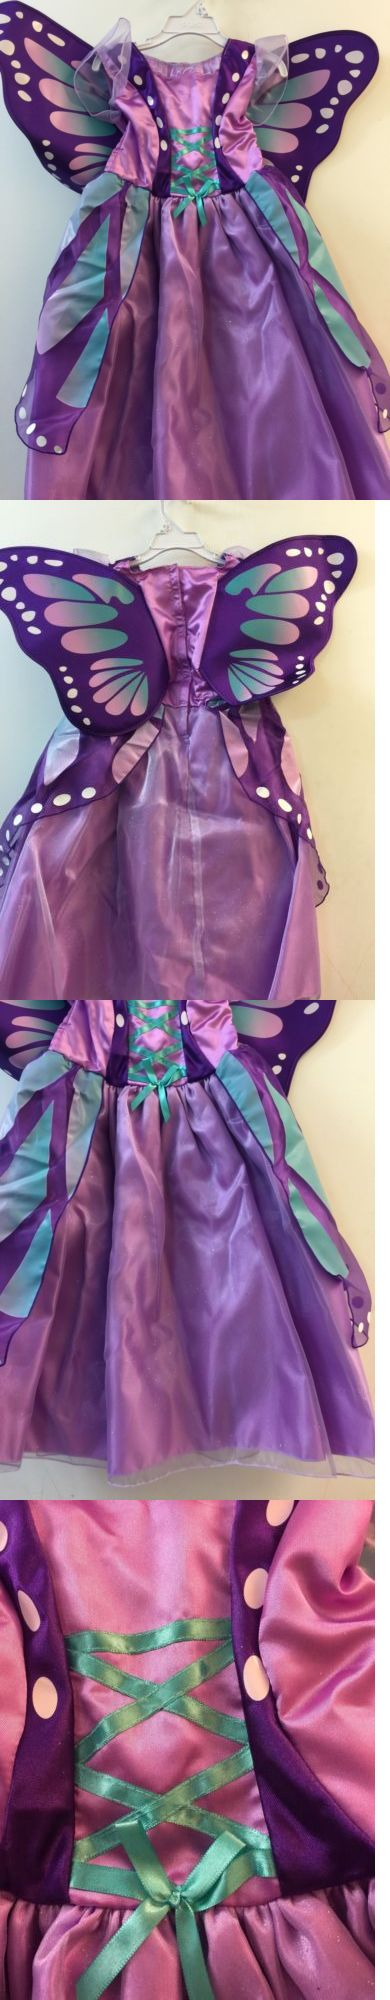 Halloween Costumes Kids: Toddler Girls Purple Butterfly Dress Up Costume BUY IT NOW ONLY: $34.99